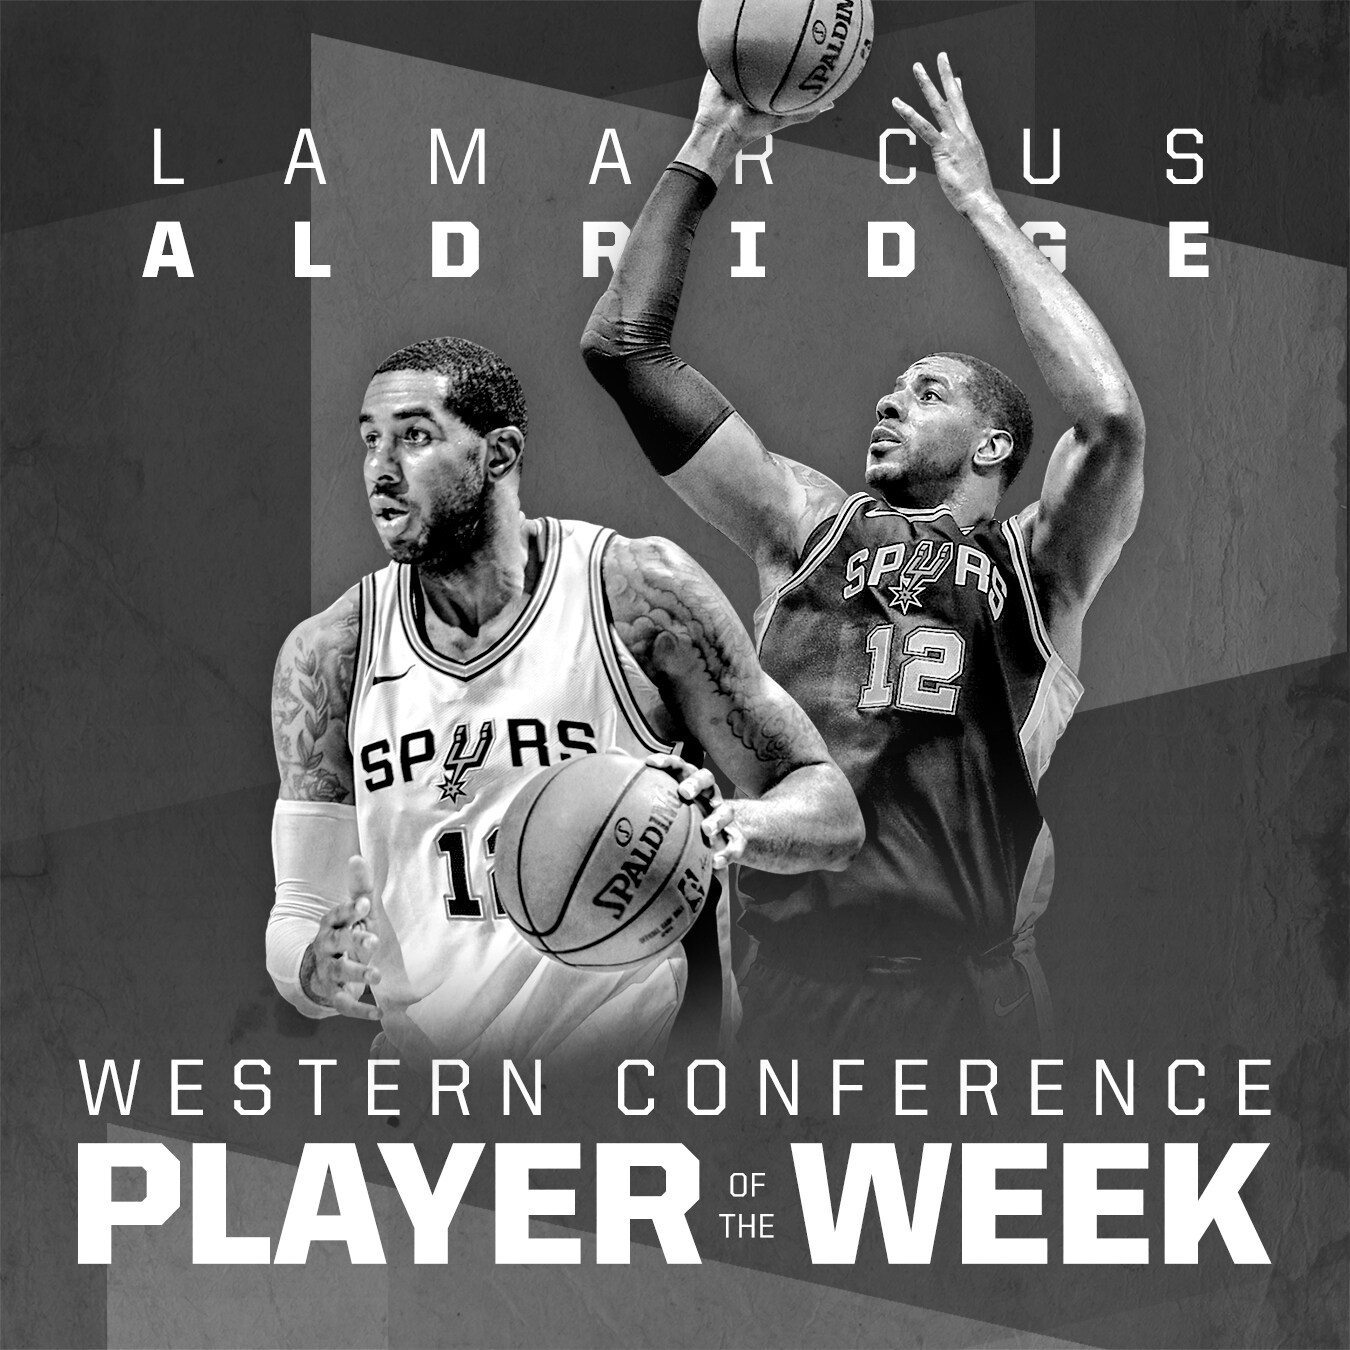 039dce4ee LAMARCUS ALDRIDGE NAMED WESTERN CONFERENCE PLAYER OF THE WEEK